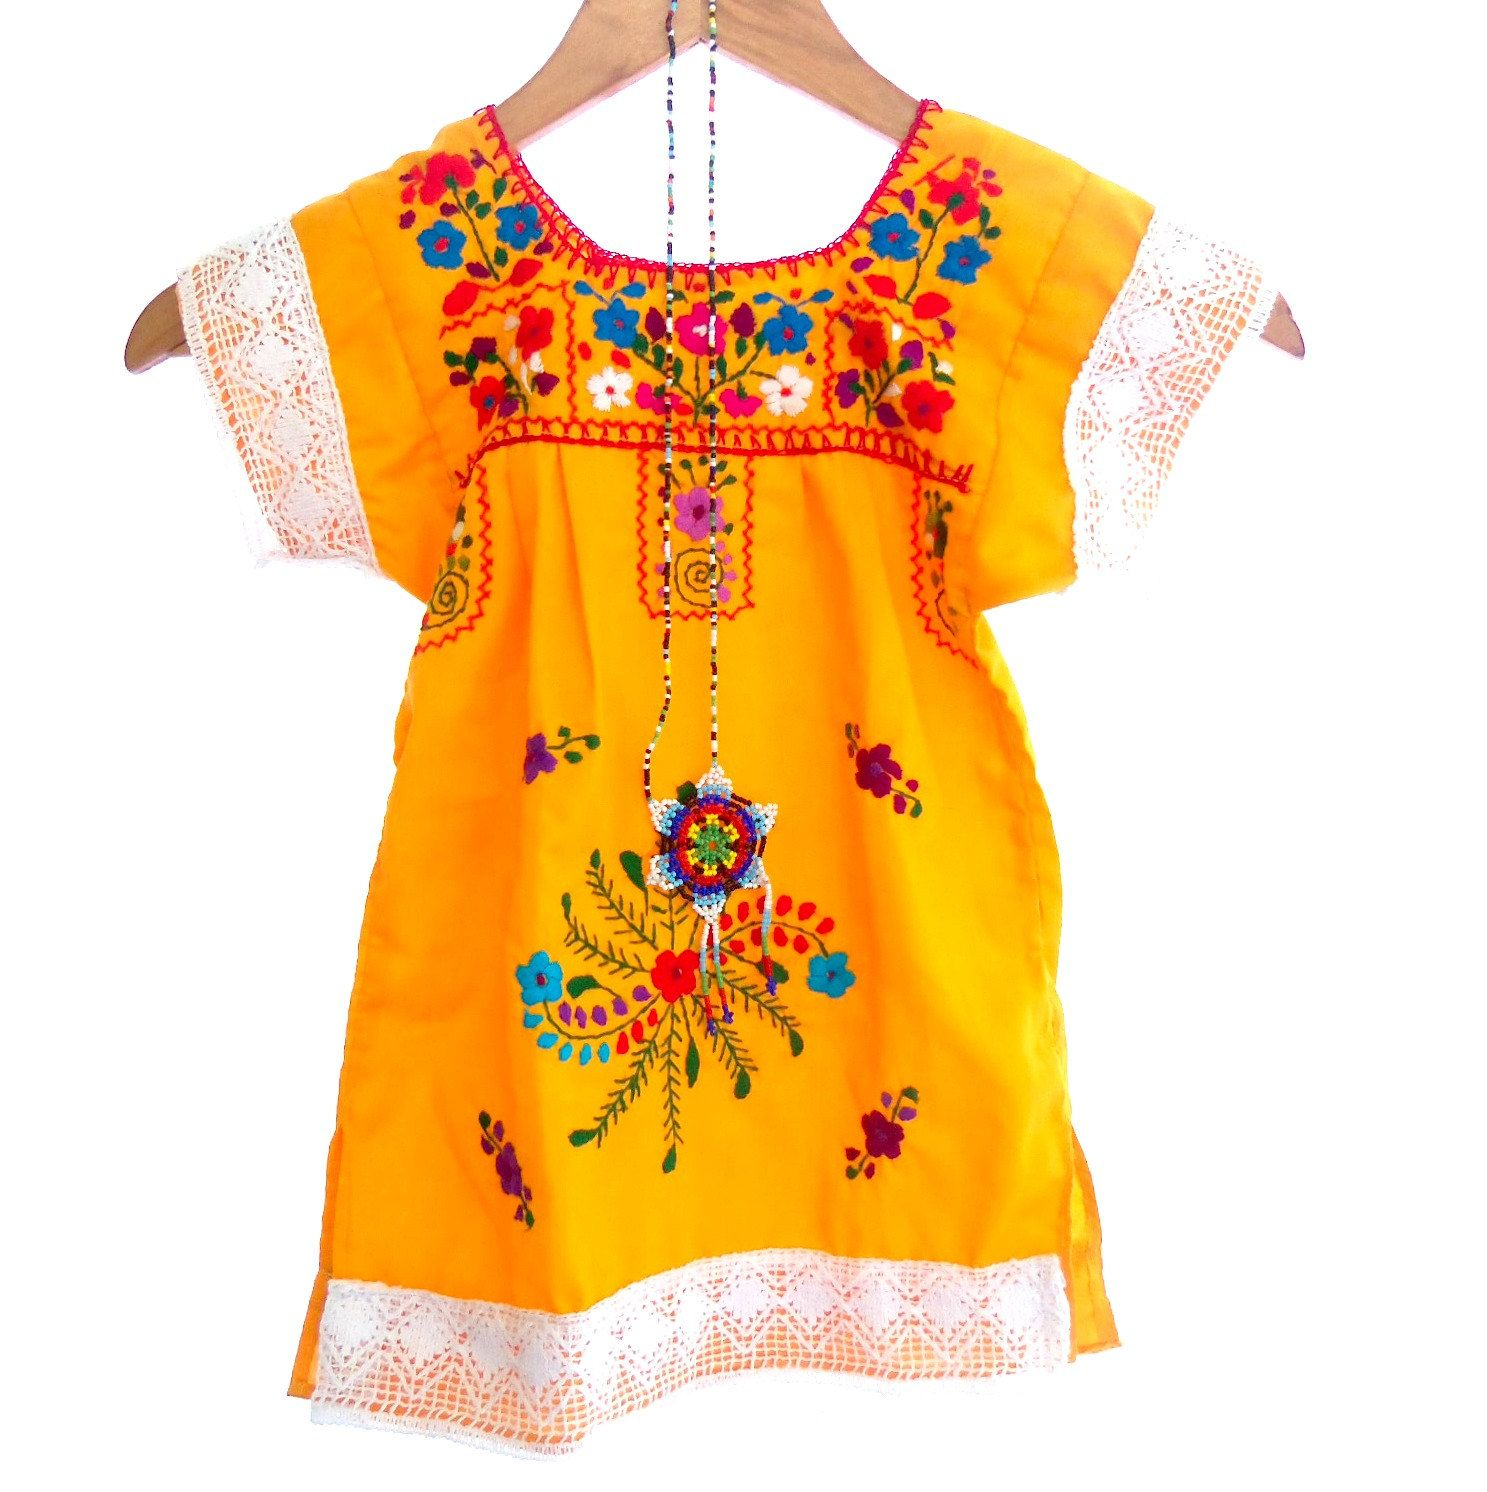 Marisol Yellow Mexican Embroidered White Crochet Baby Dress Valentina [ 1492 x 1487 Pixel ]